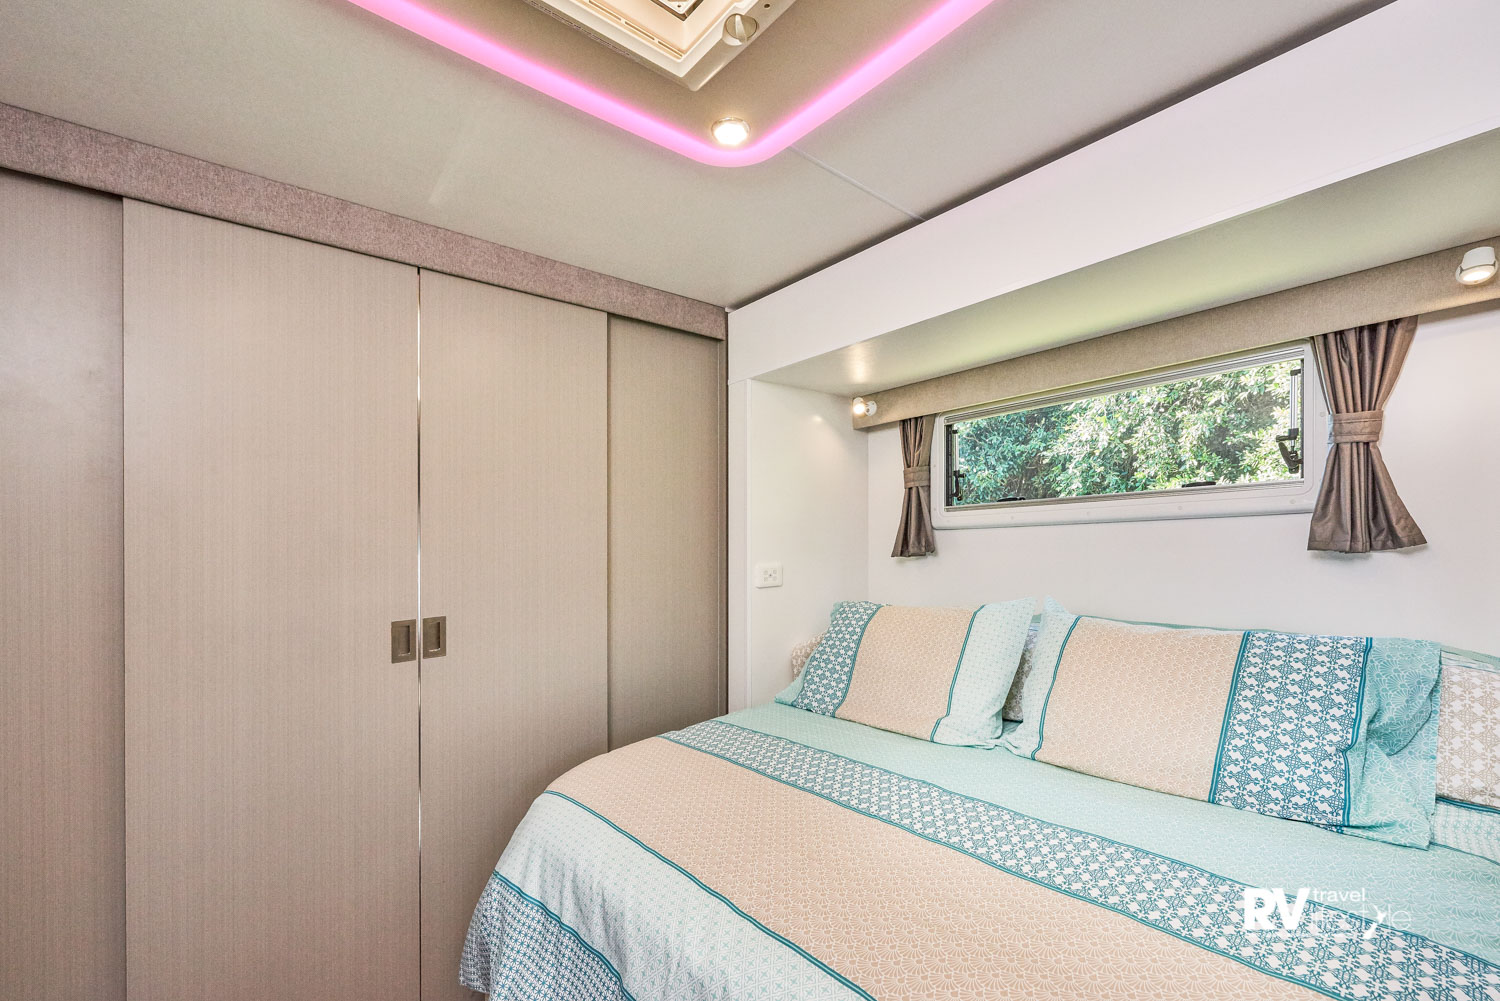 Sliding doors close to separate the bedroom suite